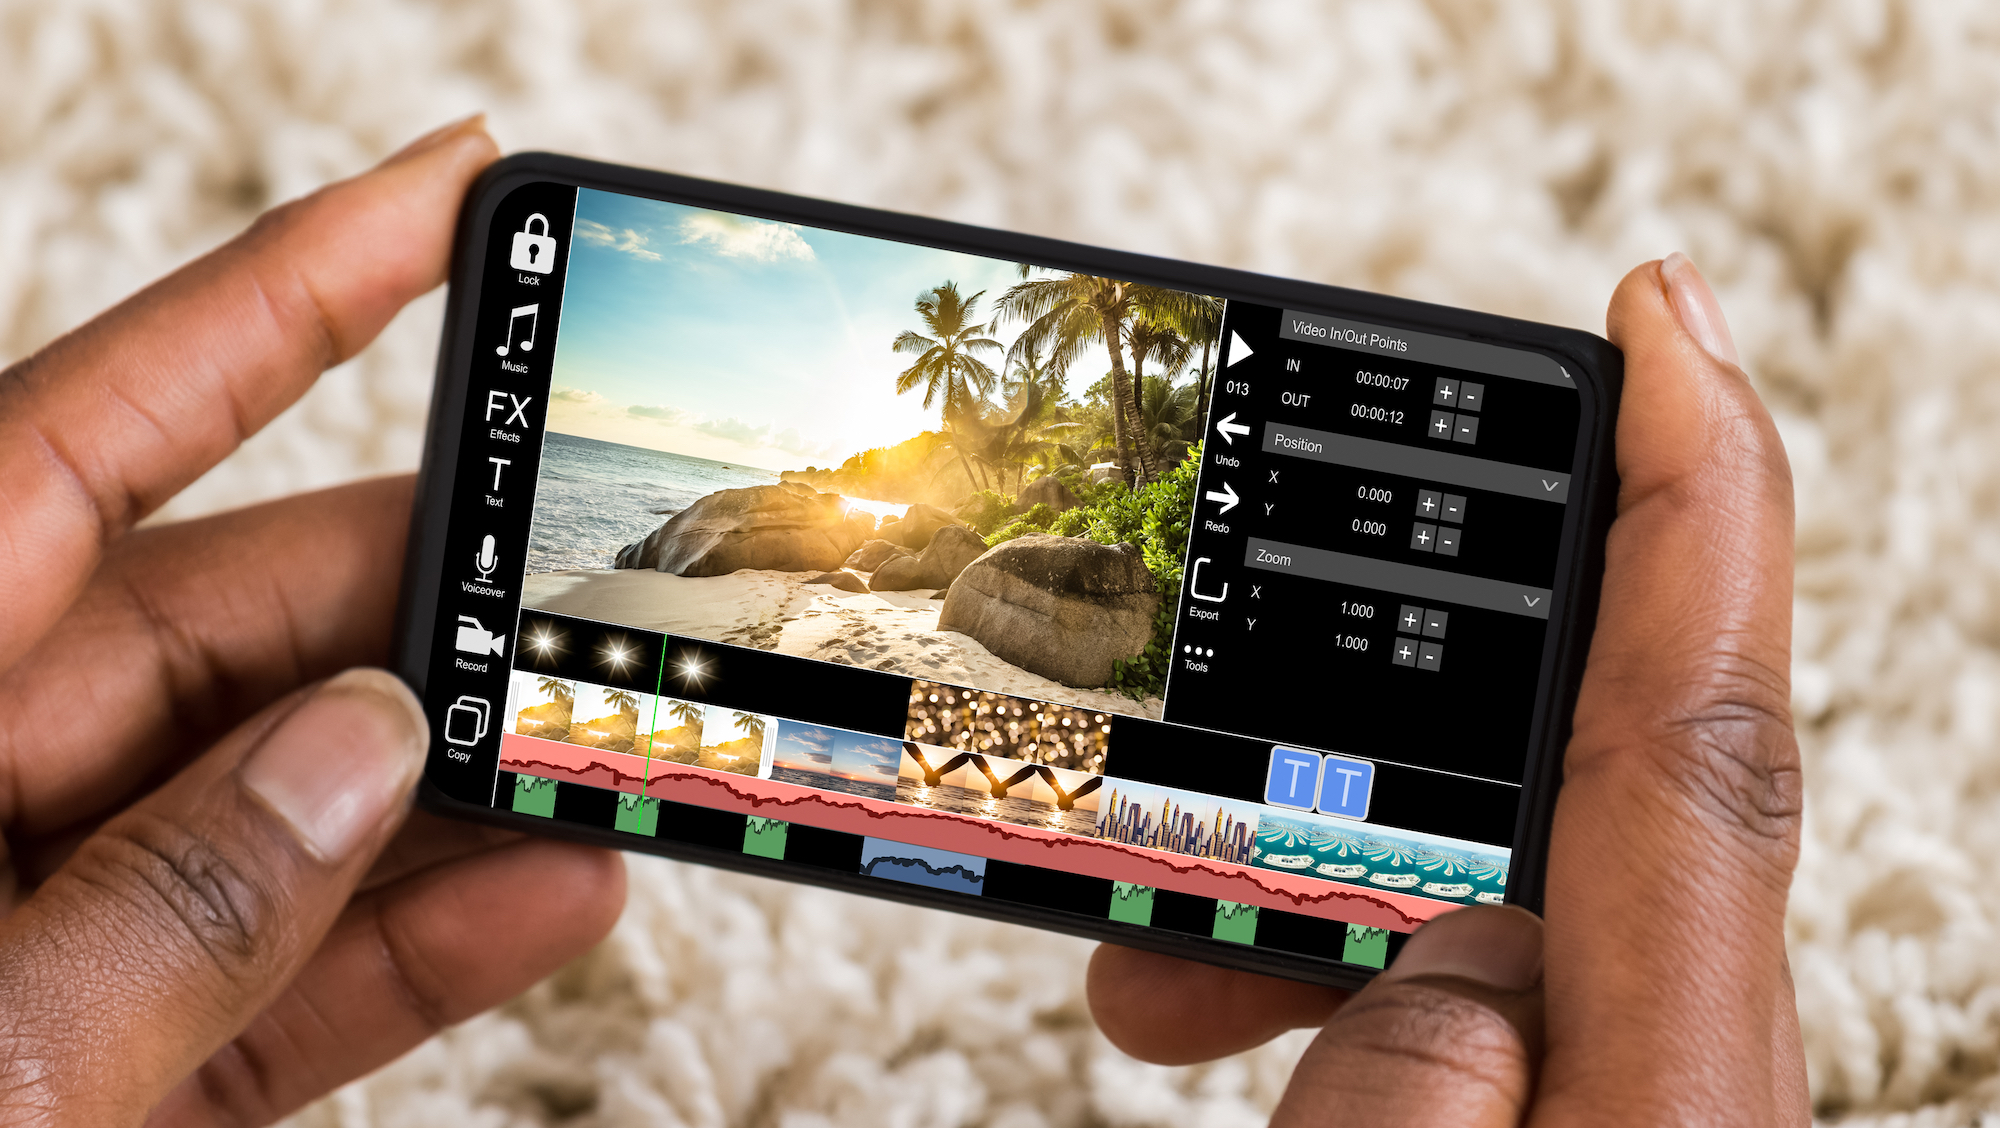 Editing,Videos,On,Mobile,Phone,Using,Video,Editor,App